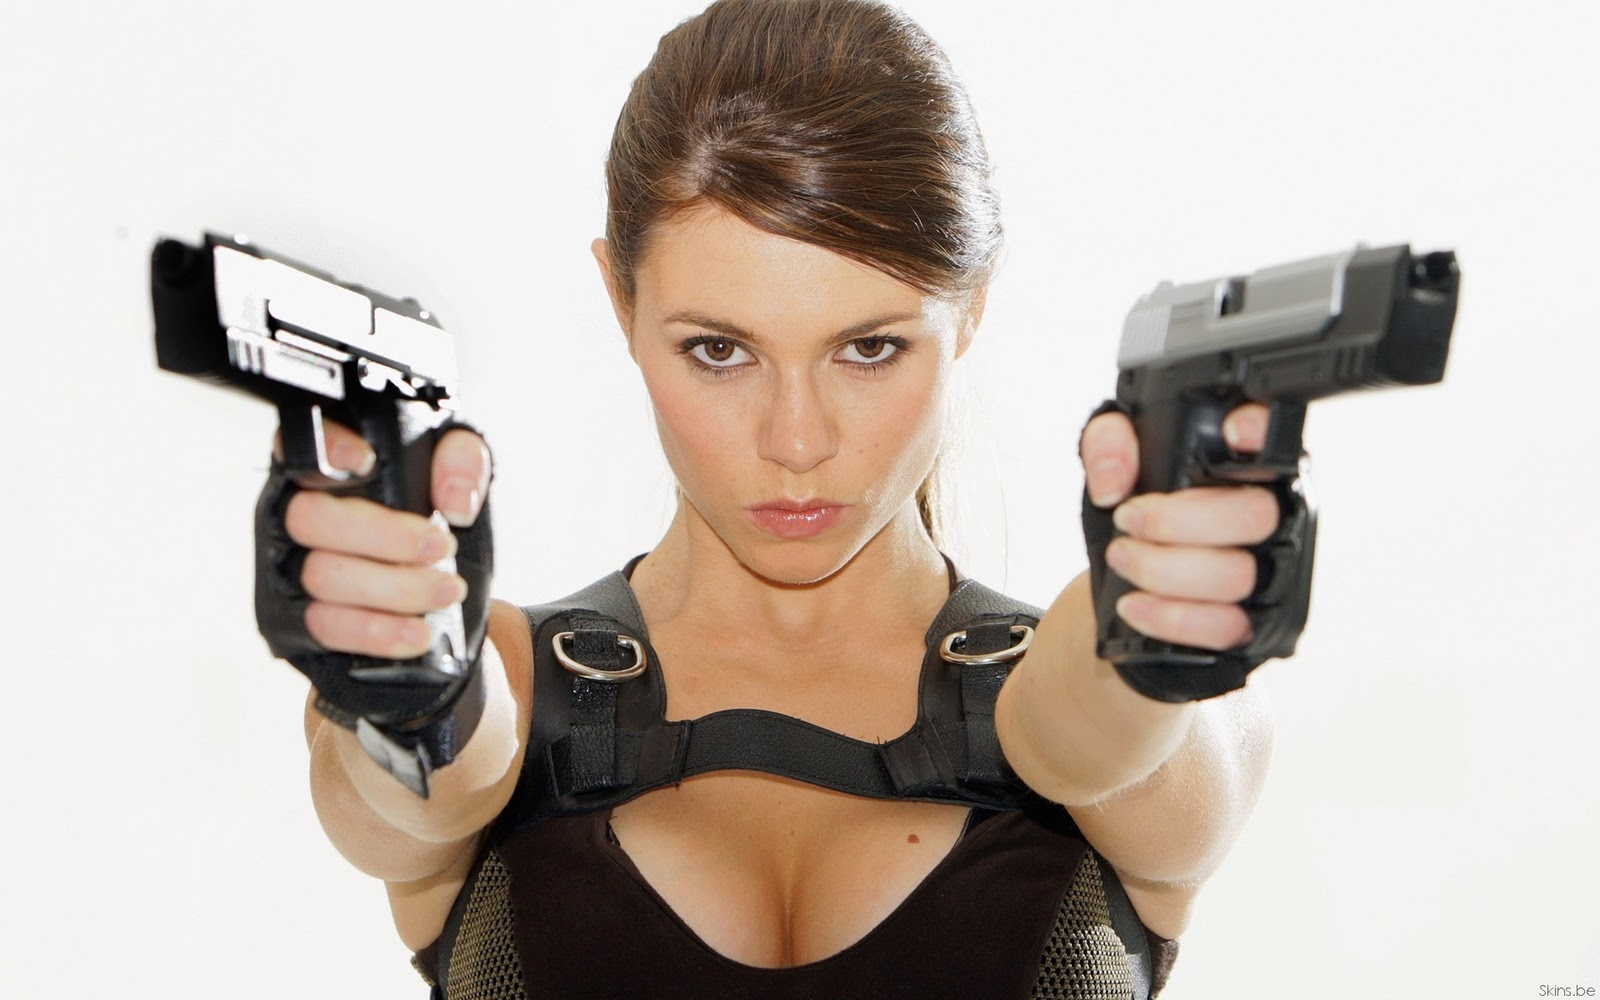 Wanted white girls guns girl gun weapon sexy babe scifi wallpaper wanted white girls guns girl gun weapon sexy babe scifi wallpaper 1600x1000 voltagebd Gallery